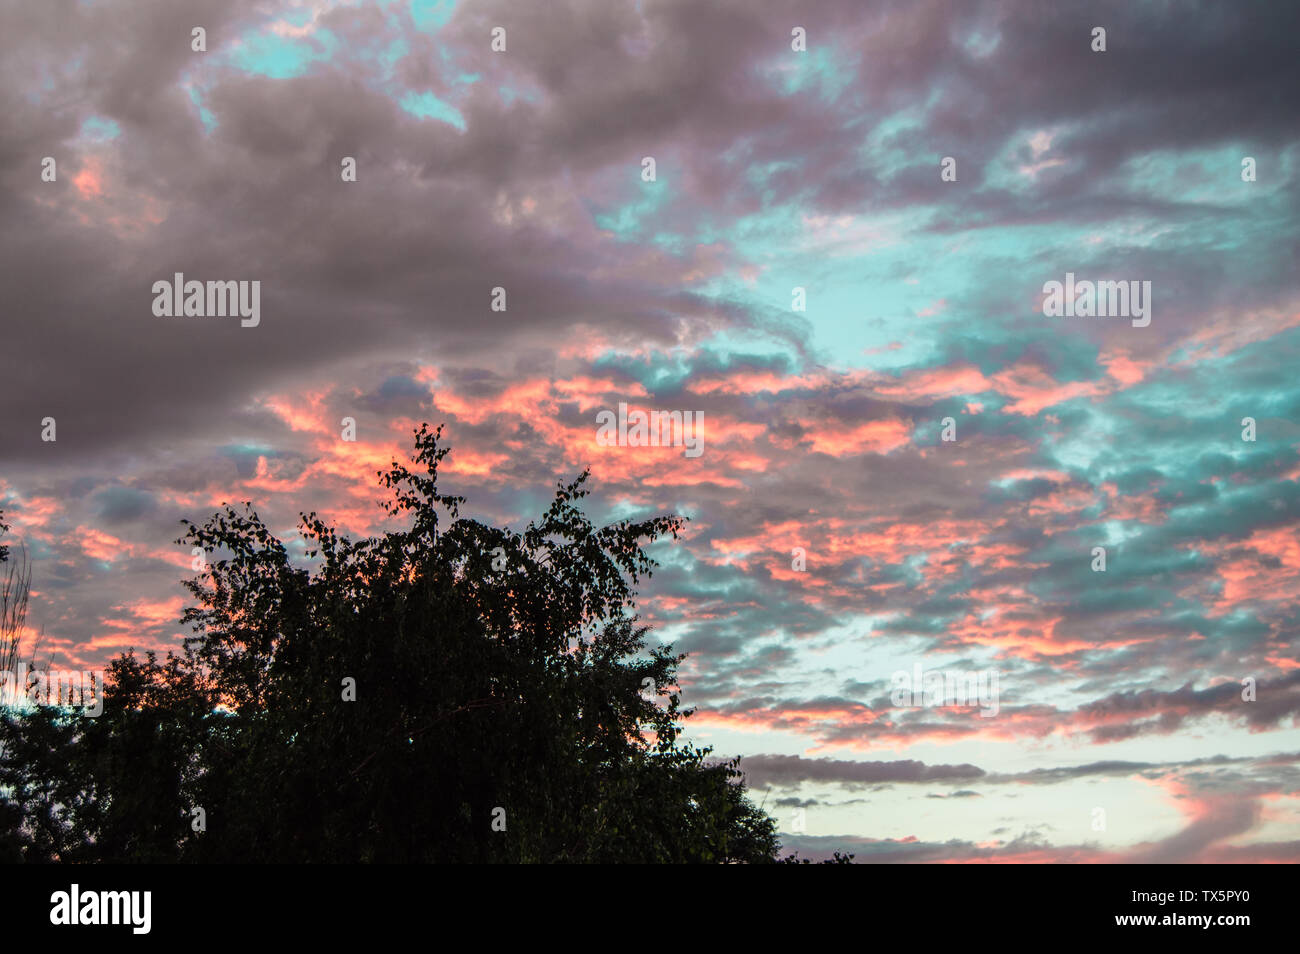 Colorful summer sunset after rain with dramatic blue and pink clouds, weather concept, seasonal specifics, copy space. - Stock Image